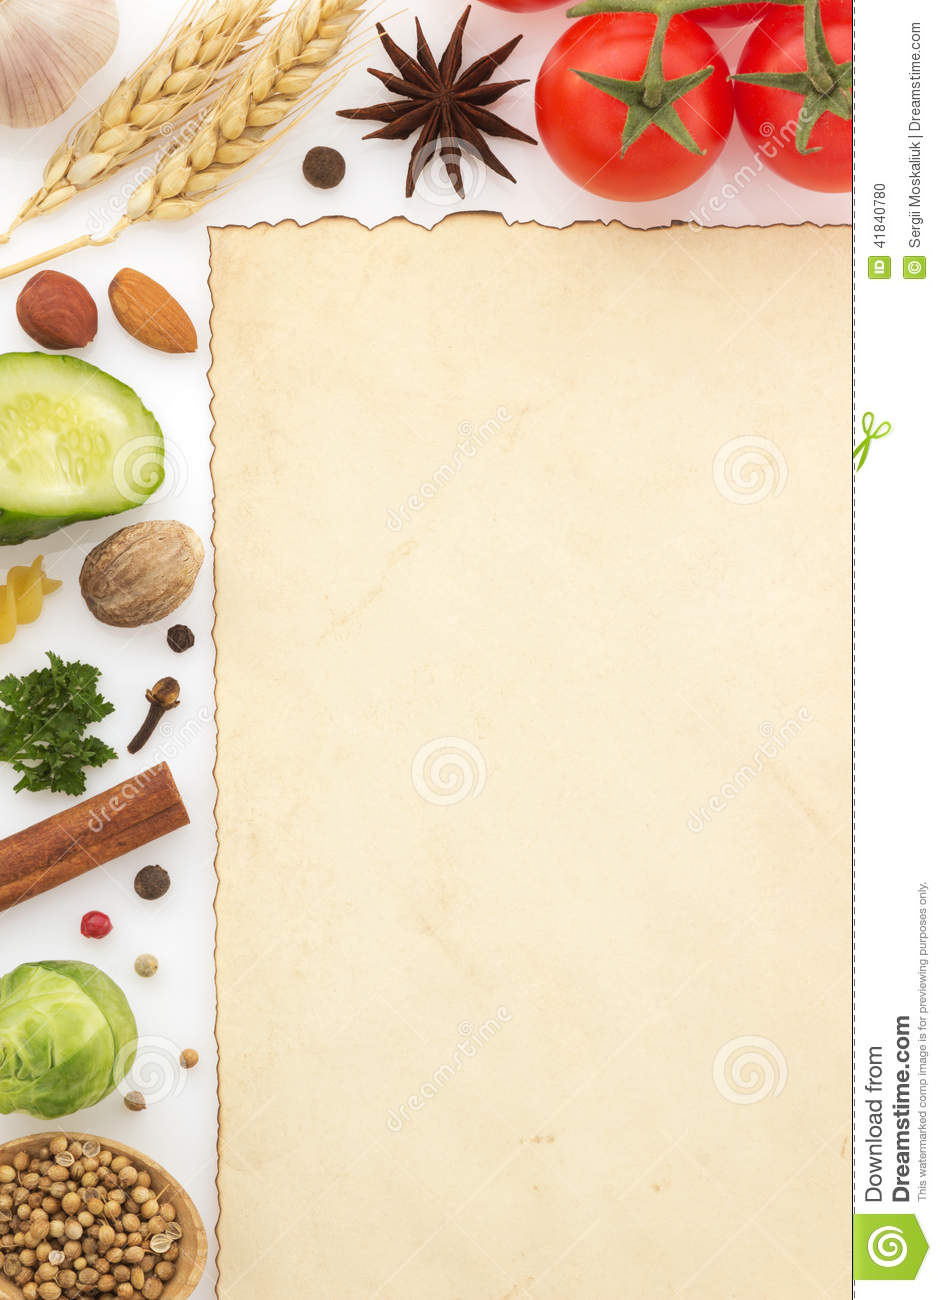 essay on food additives Food additives essay - the leading term paper writing help - we provide custom essays, research papers and up to dissertations with discounts best homework writing and editing assistance - purchase online essays, research papers, reviews and proposals with benefits cheap research paper writing.